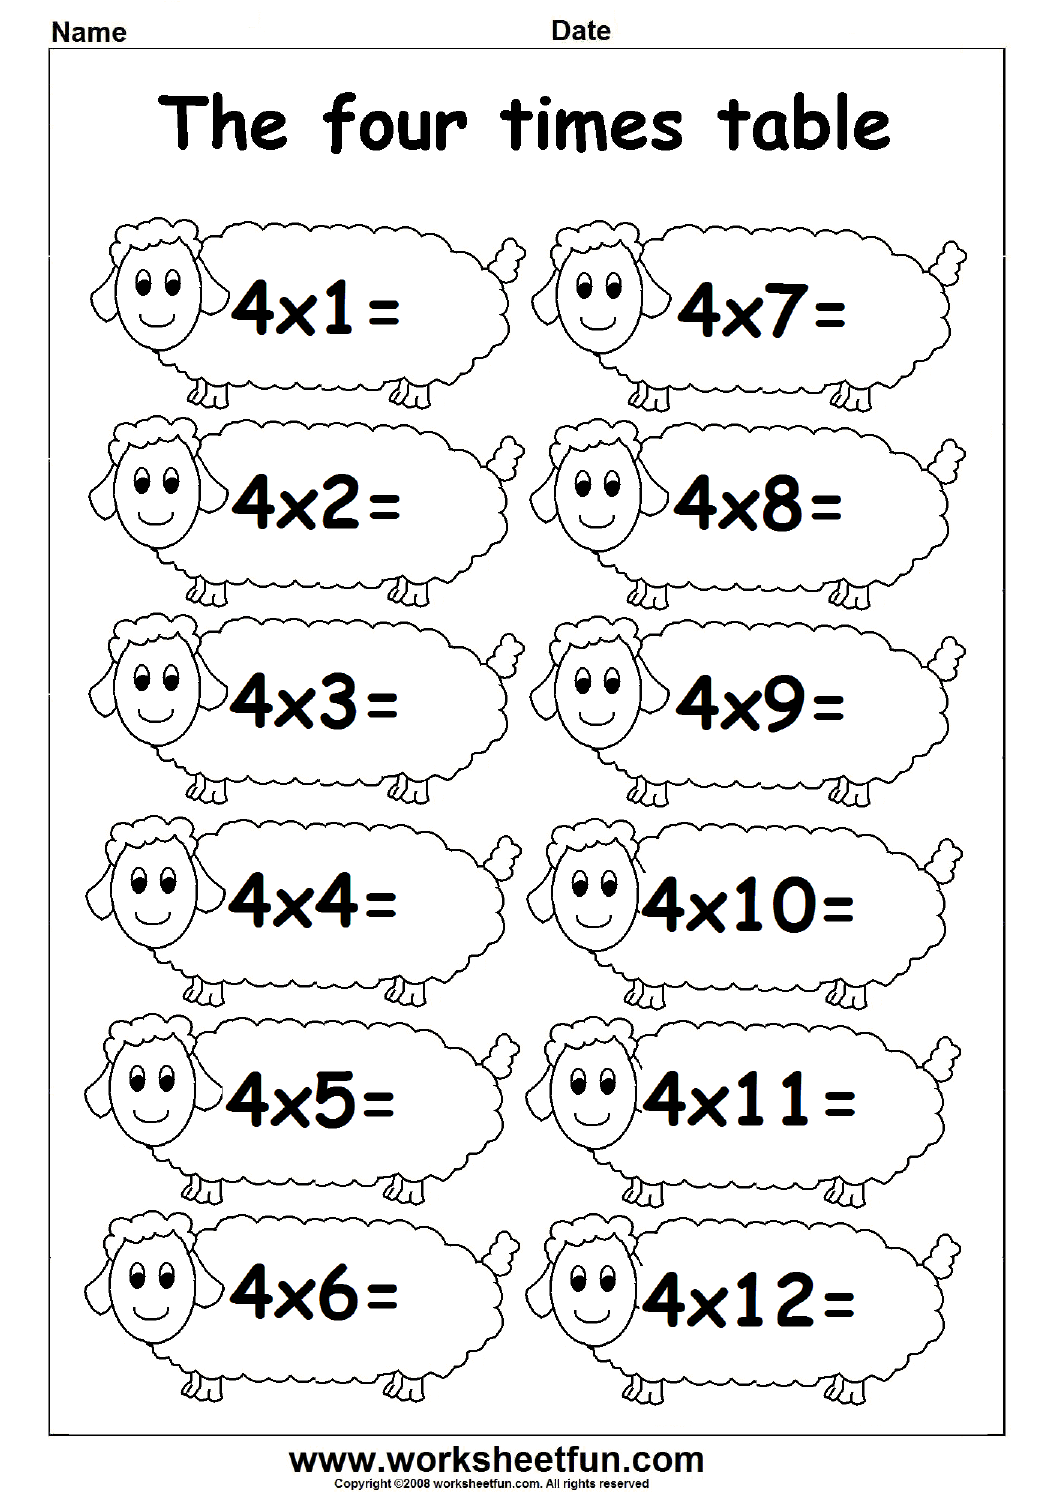 medium resolution of Pin by www.worksheetfun .com on Printable Worksheets   Times tables  worksheets